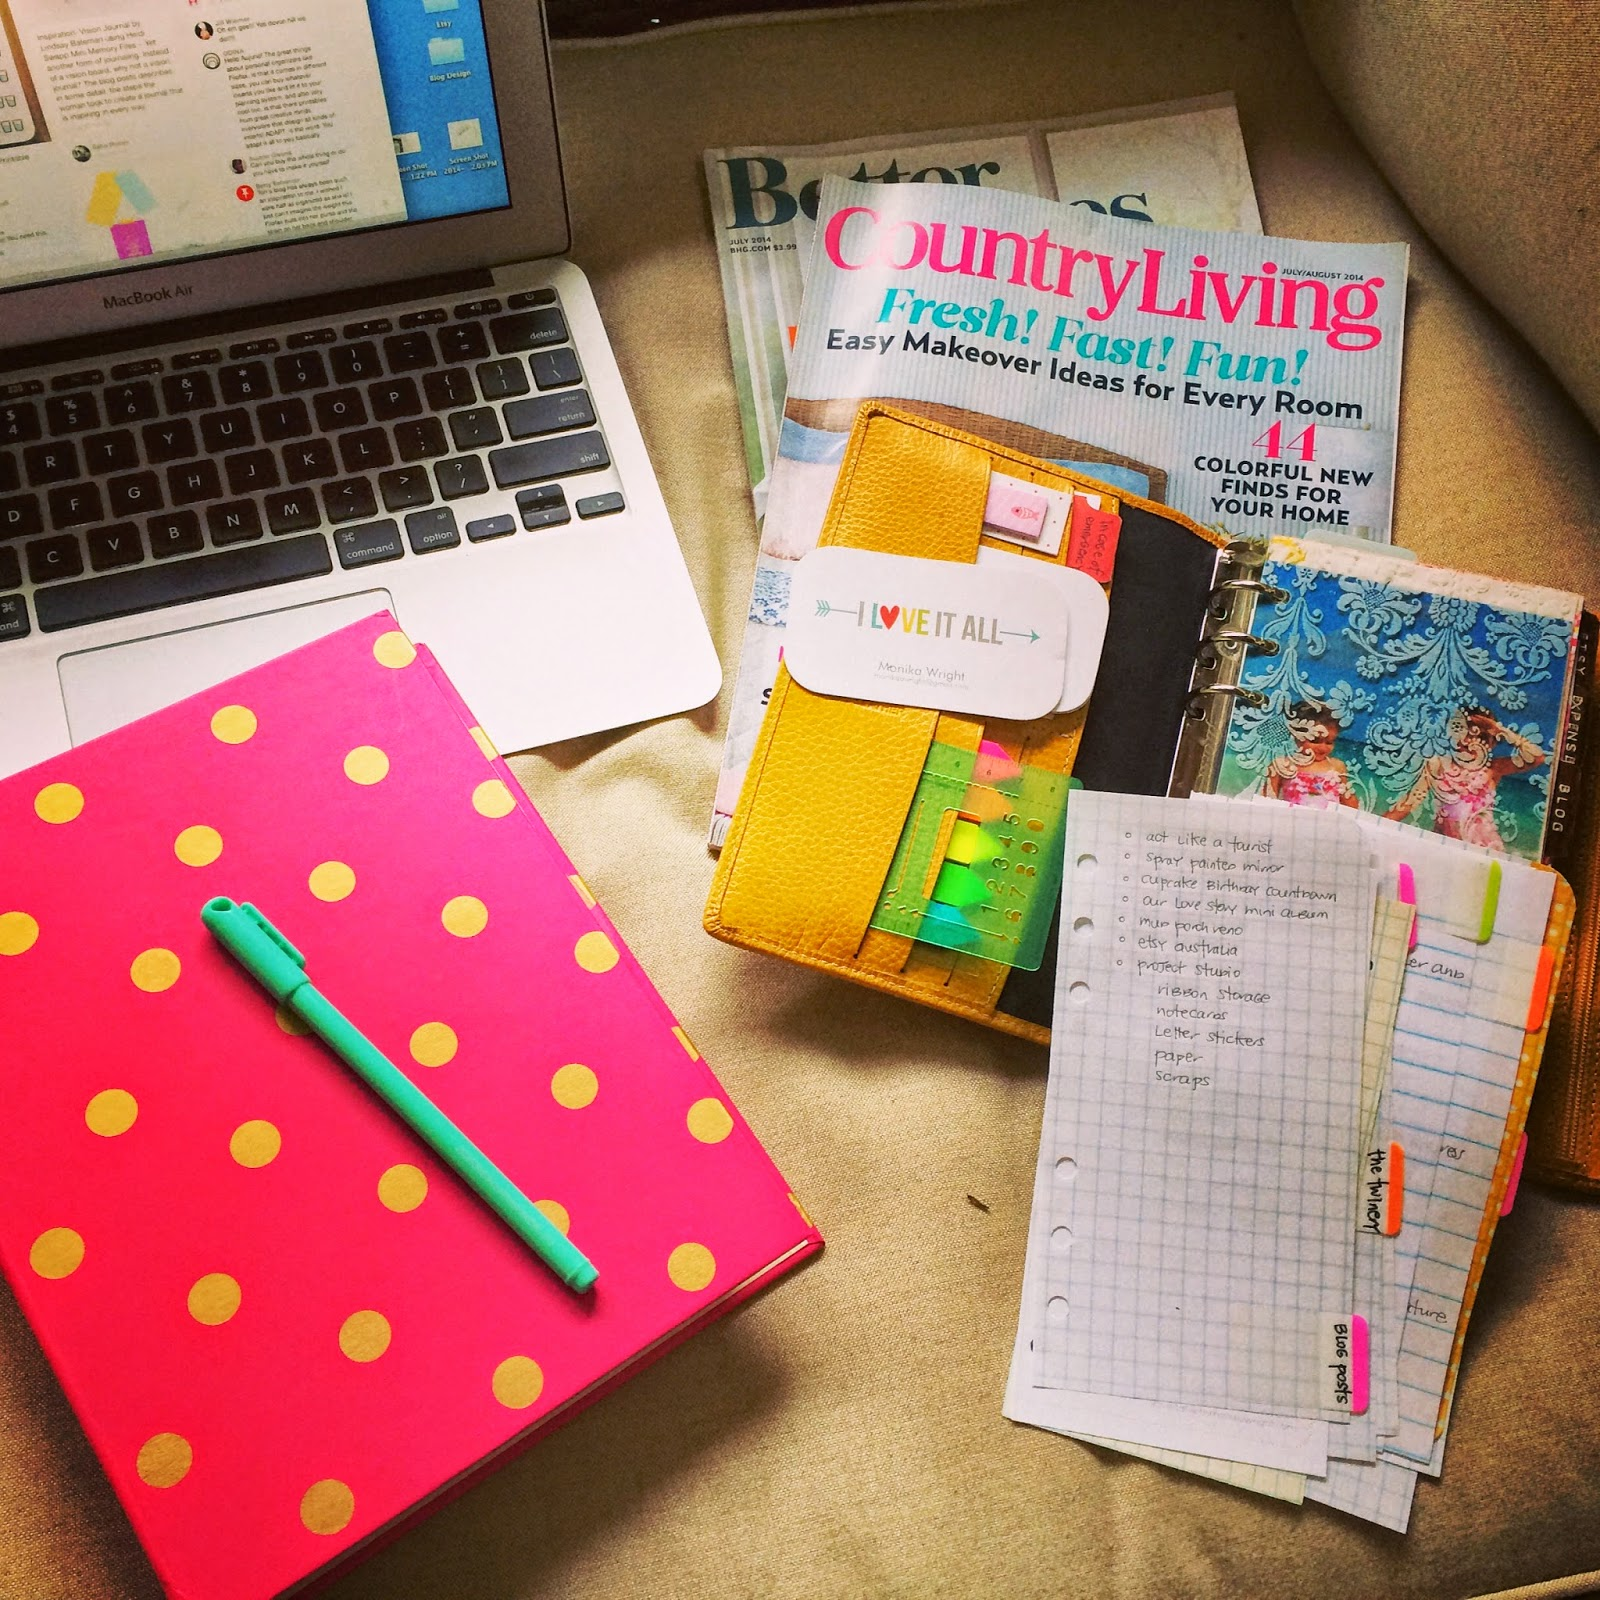 Blog Planning in your Filofax Planner | iloveitallwithmonikawright.com